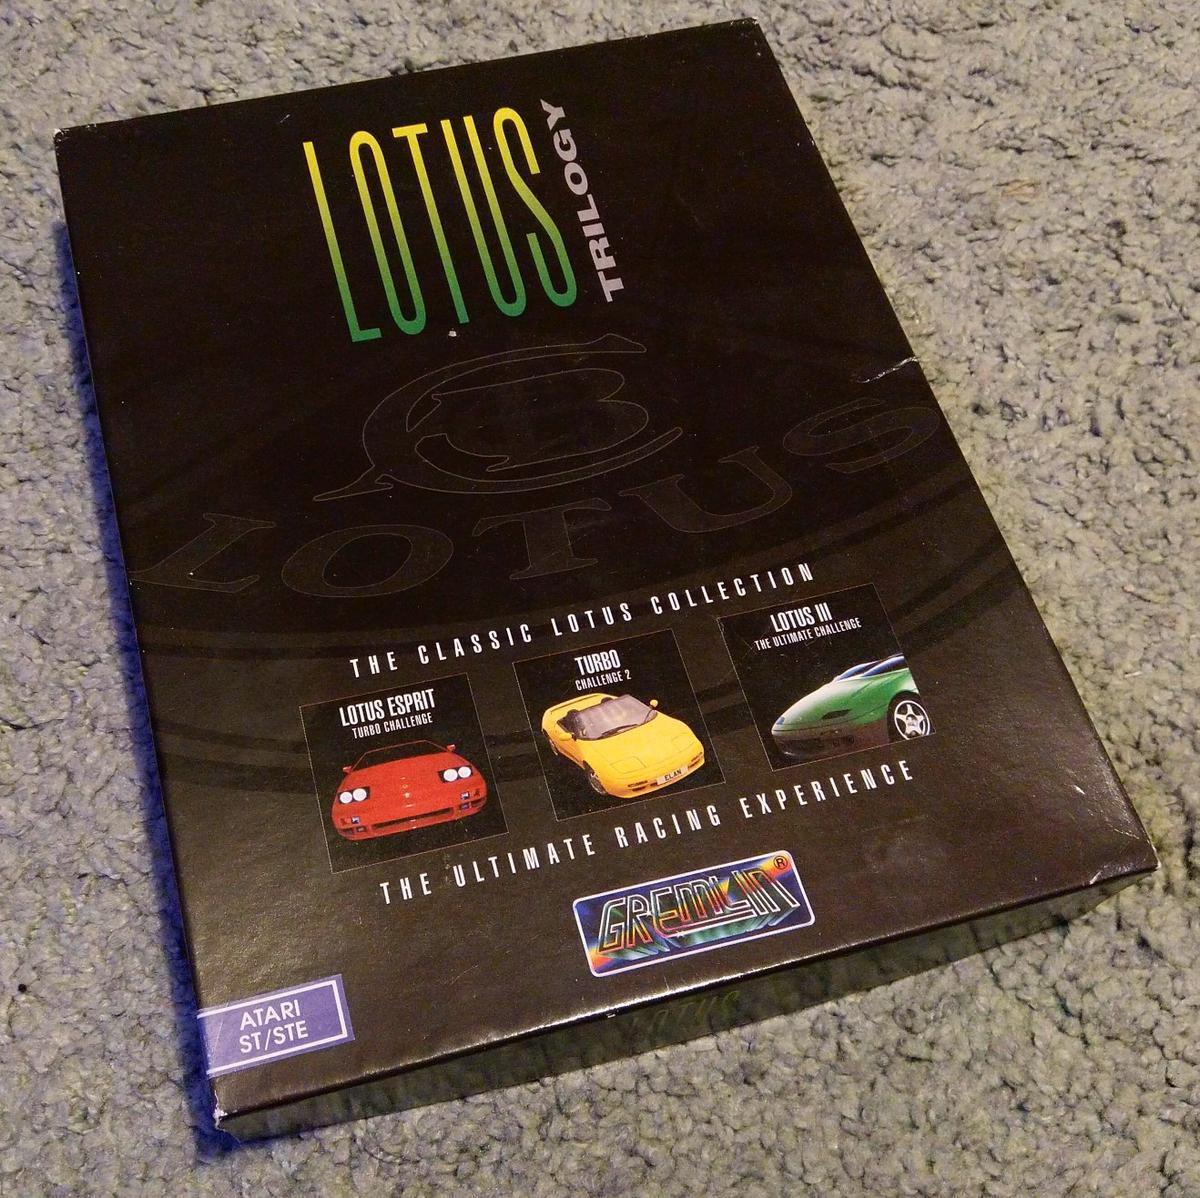 Atari ST Game - The Lotus Trilogy